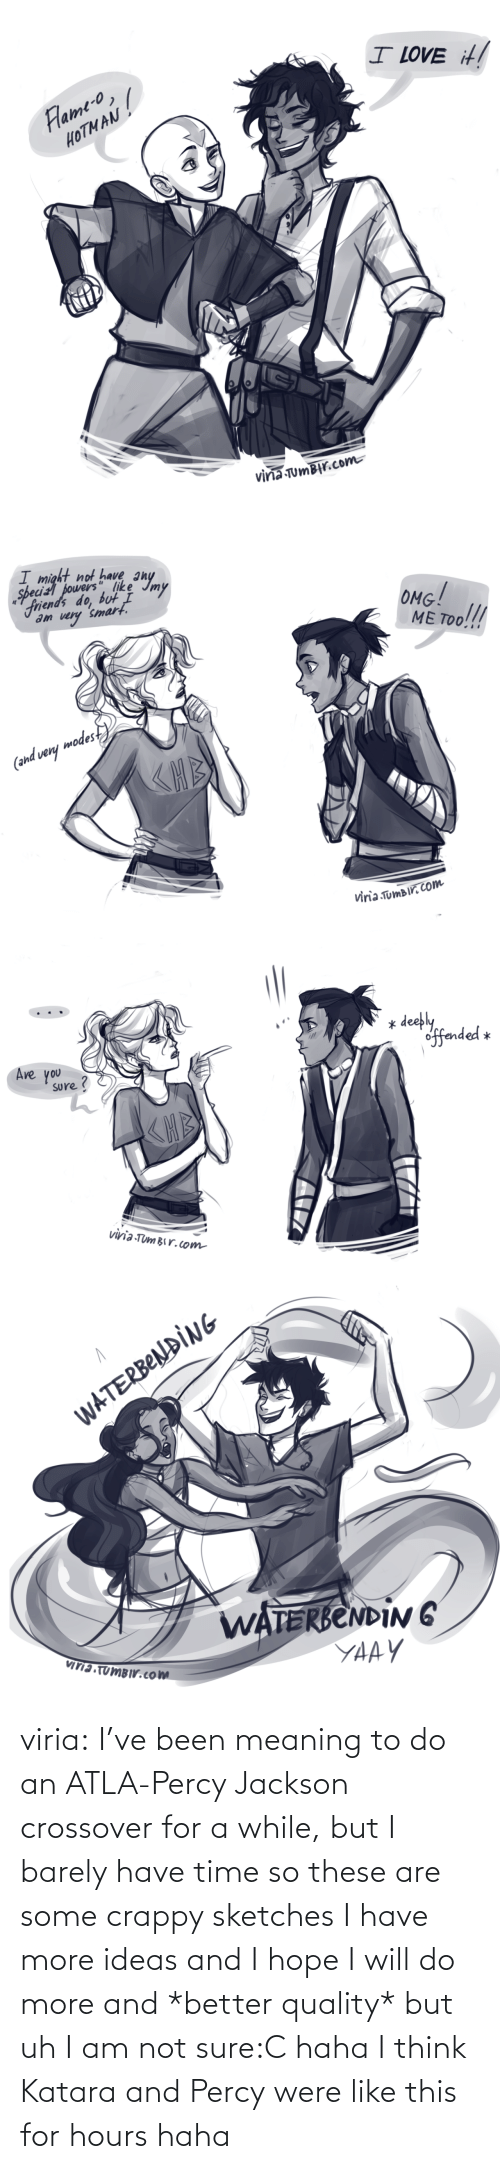 were: viria:  I've been meaning to do an ATLA-Percy Jackson crossover for a while, but I barely have time so these are some crappy sketches I have more ideas and I hope I will do more and *better quality* but uh I am not sure:C haha I think Katara and Percy were like this for hours haha